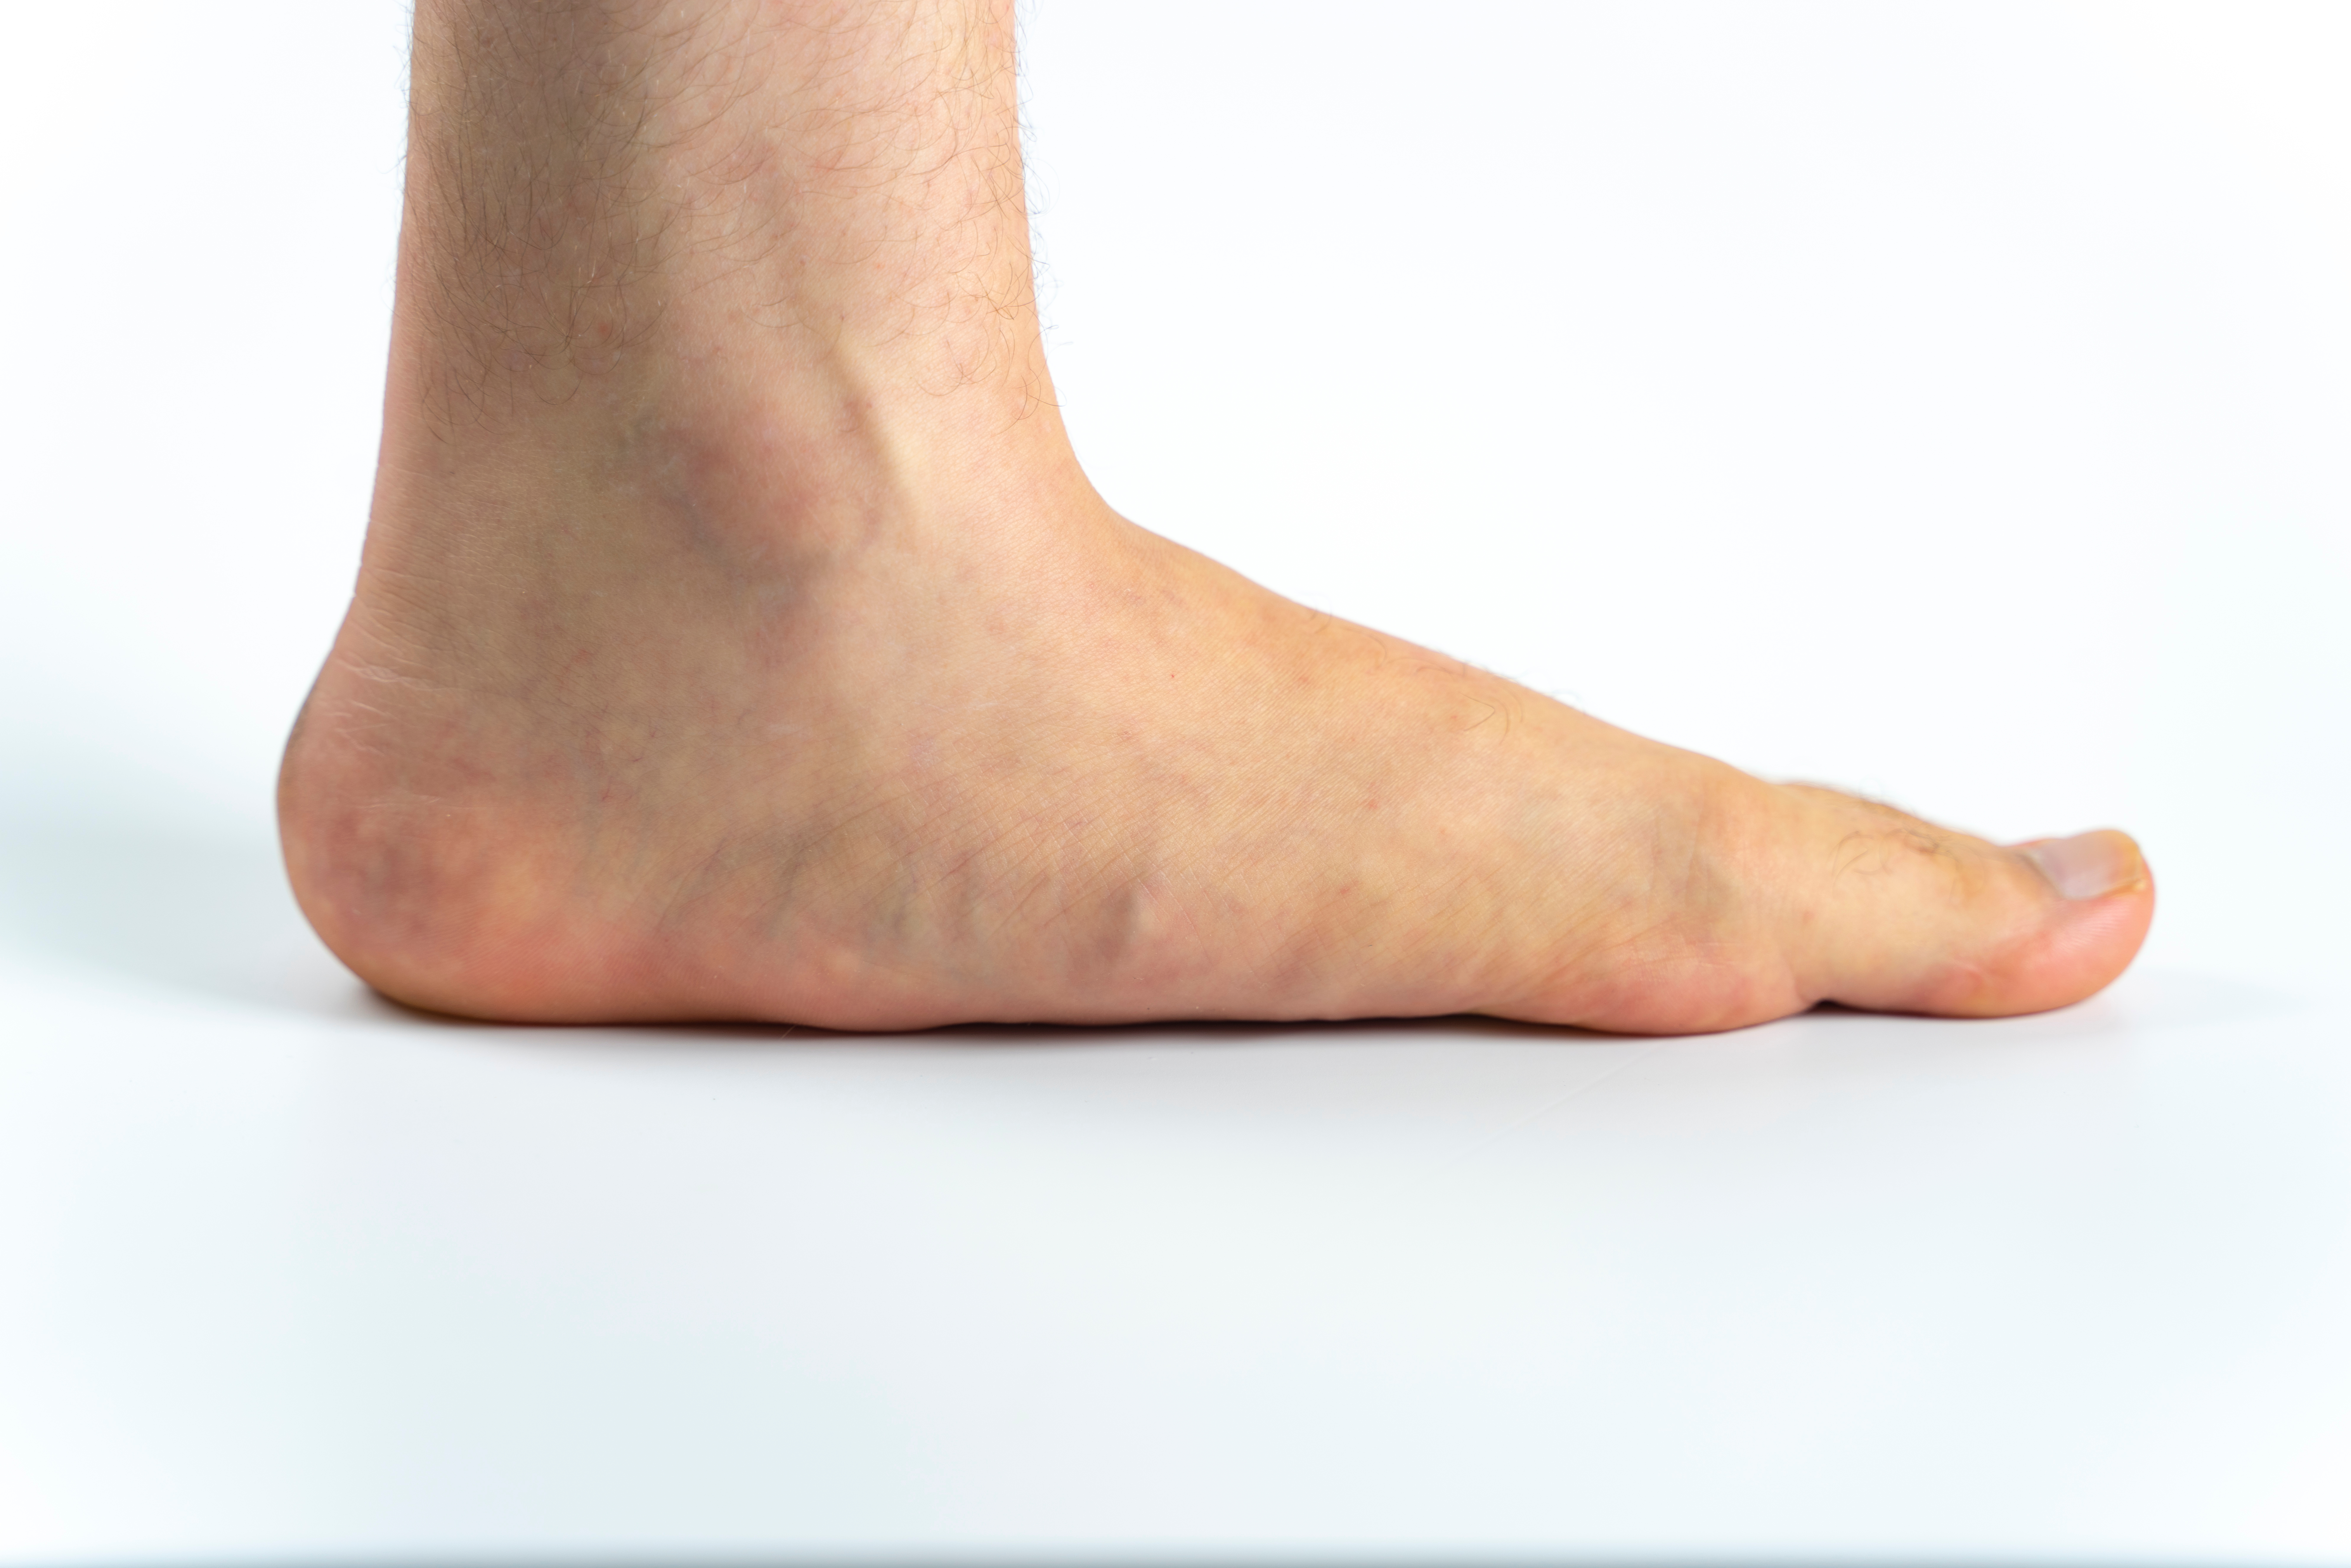 Man's foot with a flat or low arch